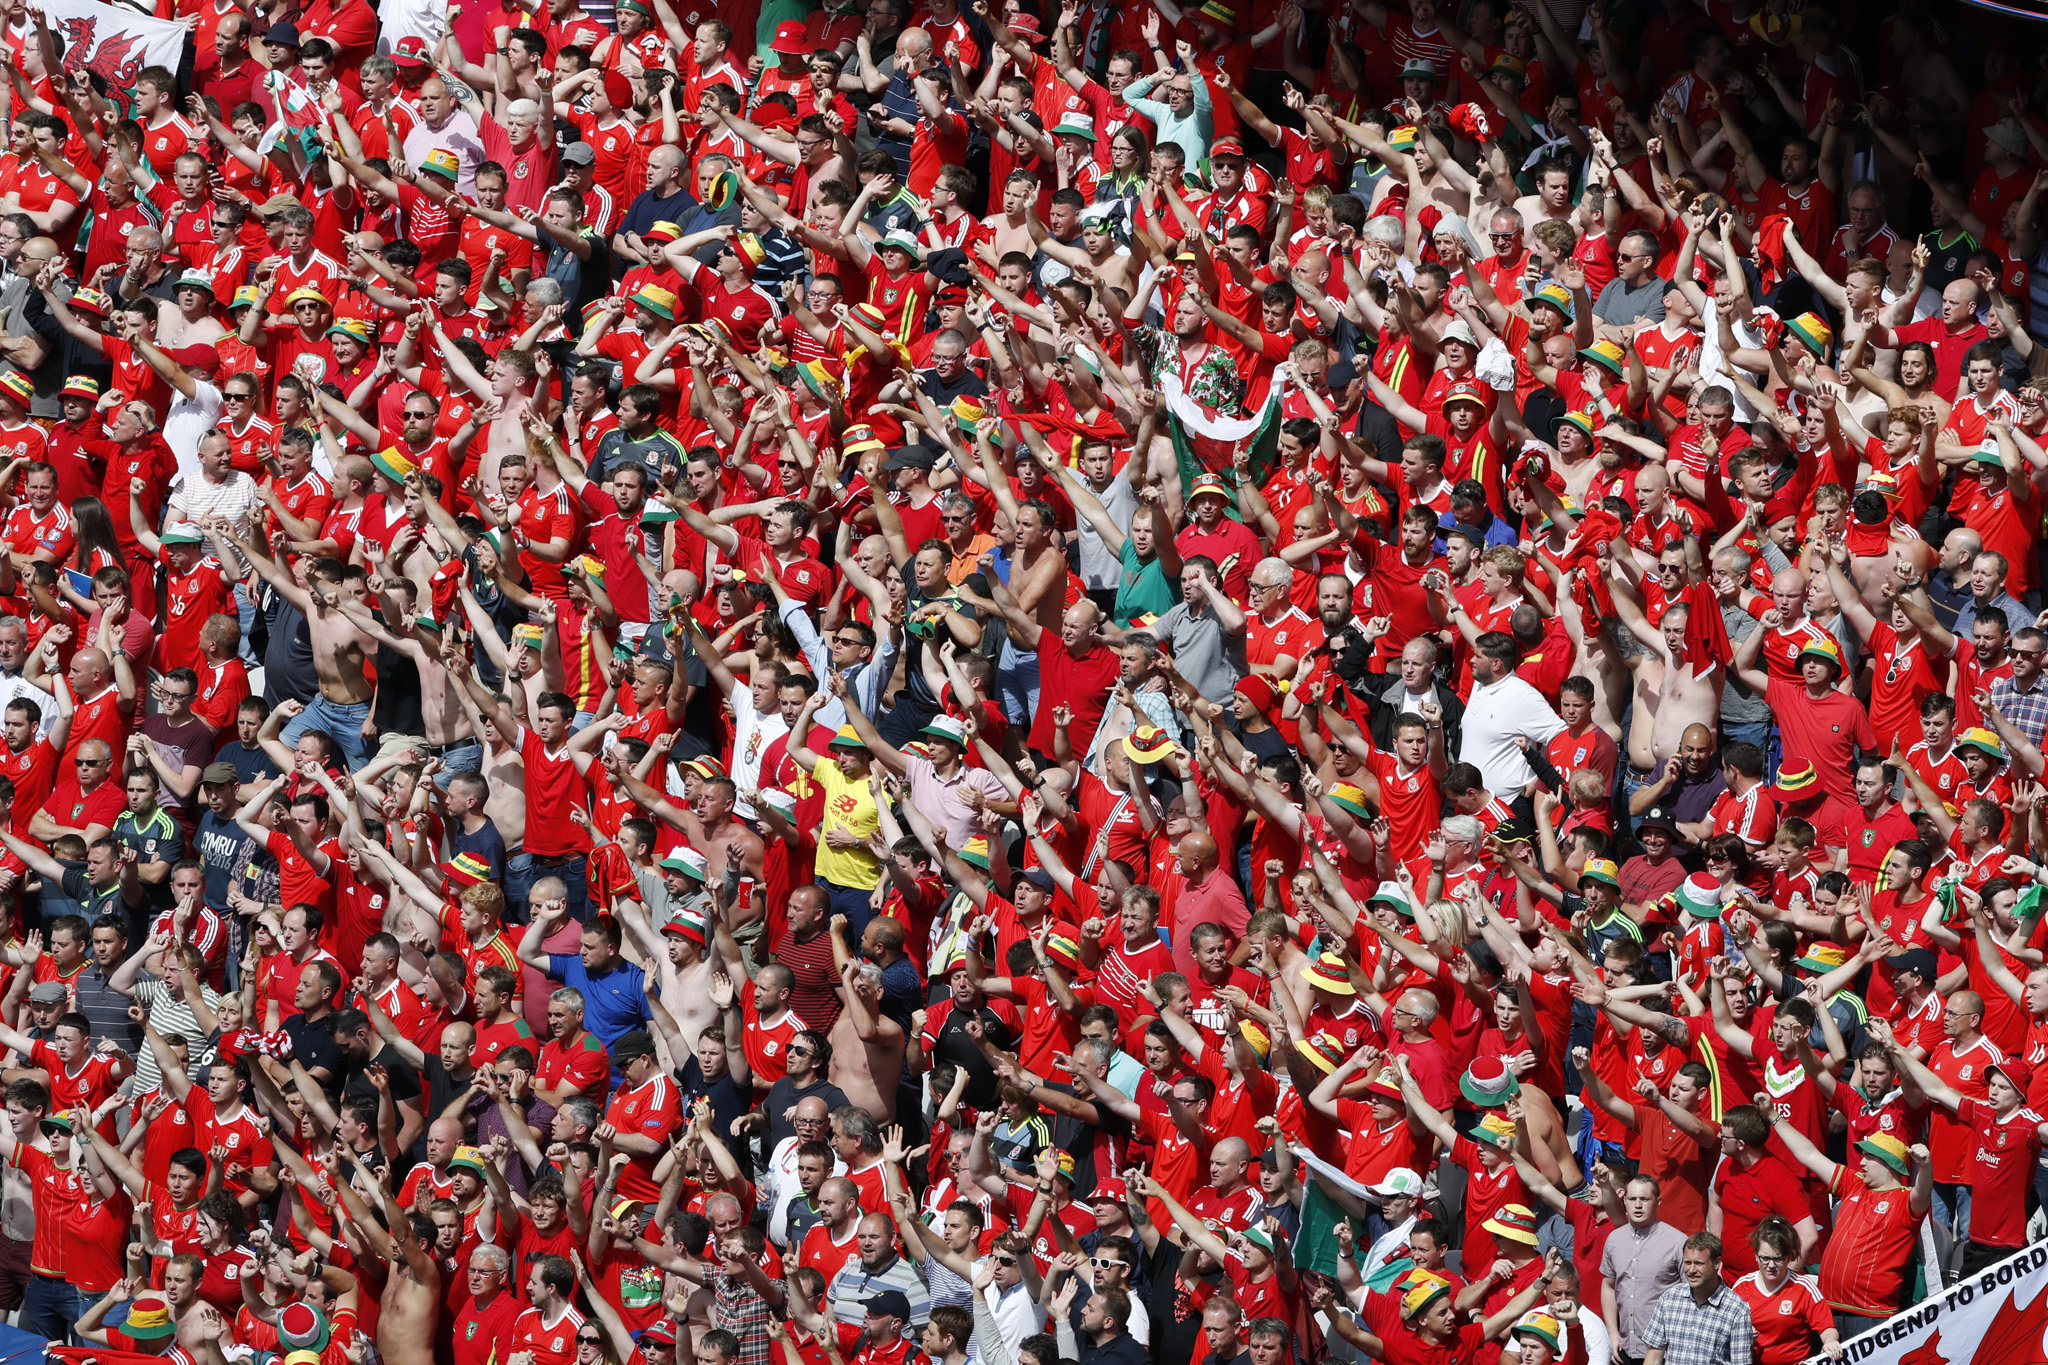 Wales supporter cheer during the Euro 2016 Group B soccer match between England and Wales at the Bollaert stadium in Lens, France, Thursday, June 16, 2016. (AP Photo/Michel Spingler)